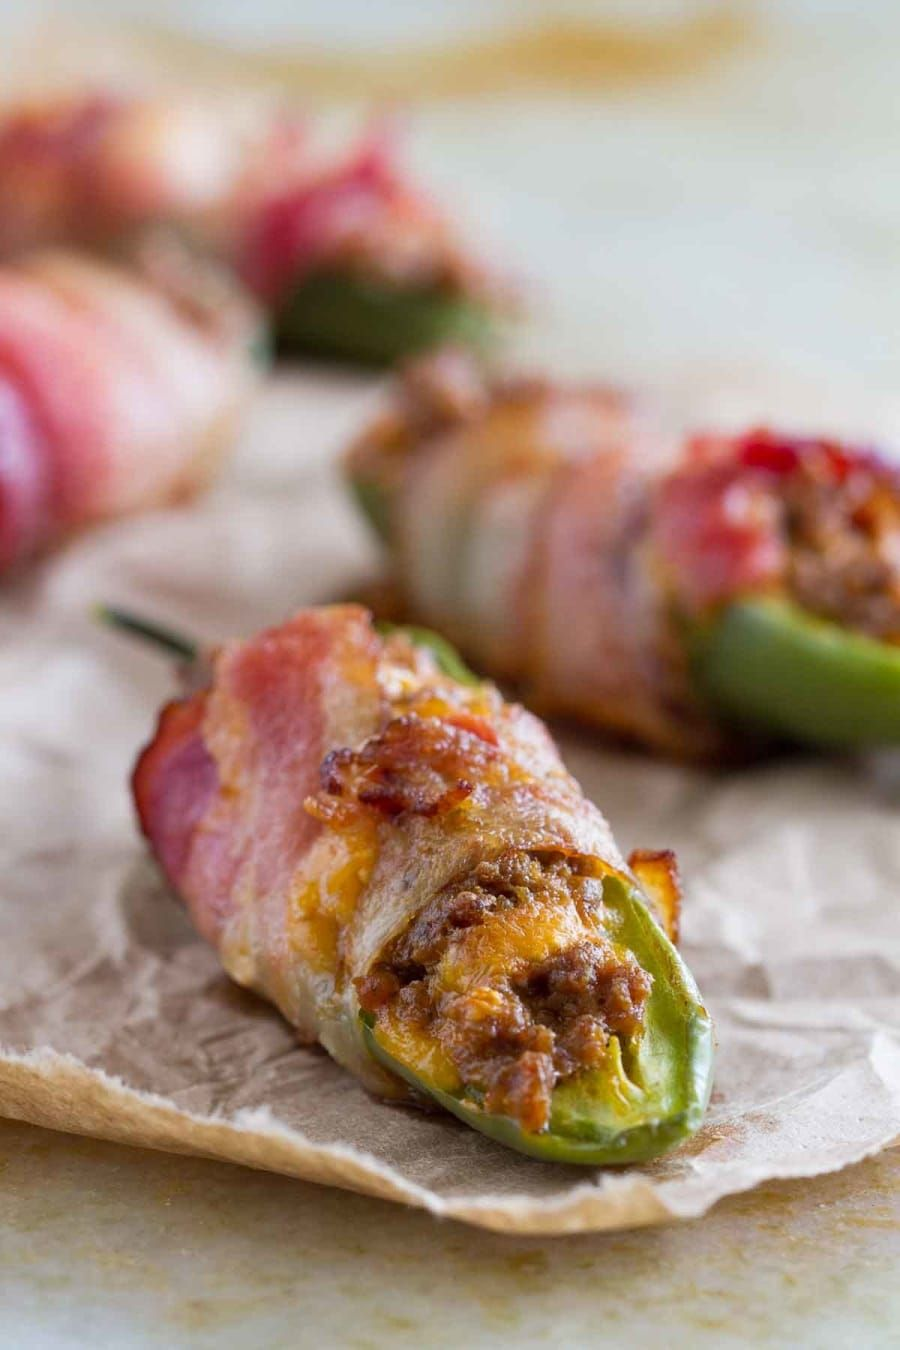 Would I like crispy, spicy, salty, cheesy goodness with my jalapenos? Why yes, yes I would.